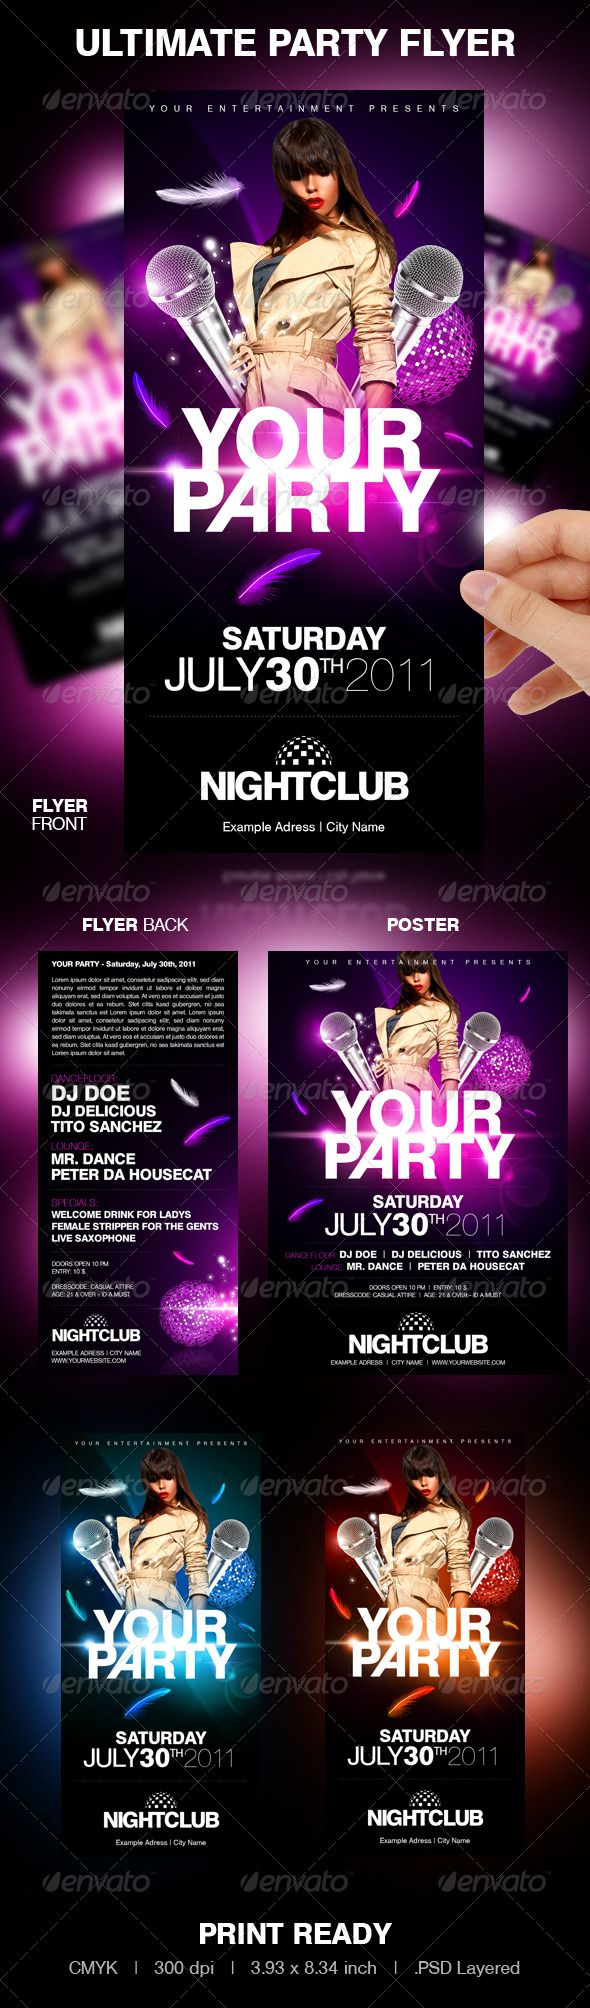 best images about best party flyers saturday 17 best images about best party flyers saturday night fonts and for